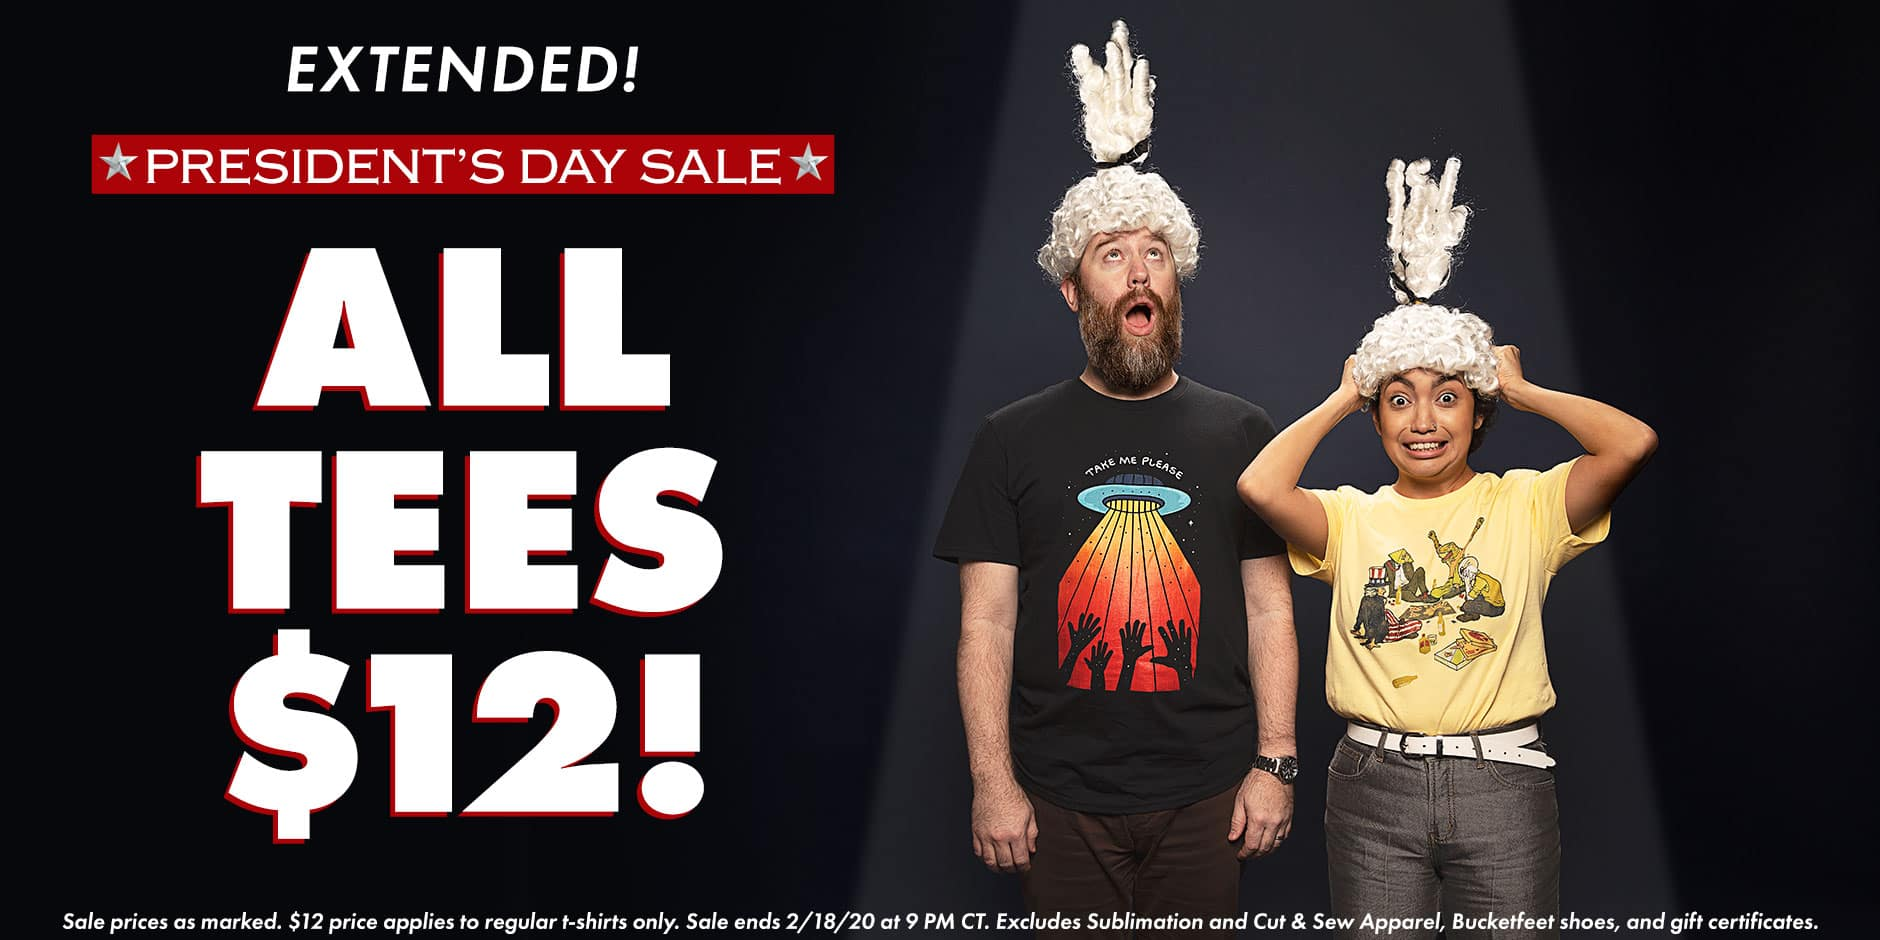 Shop the Threadless President's Day Sale, ALL Tees $12 plus up to 40% off Everything Else!